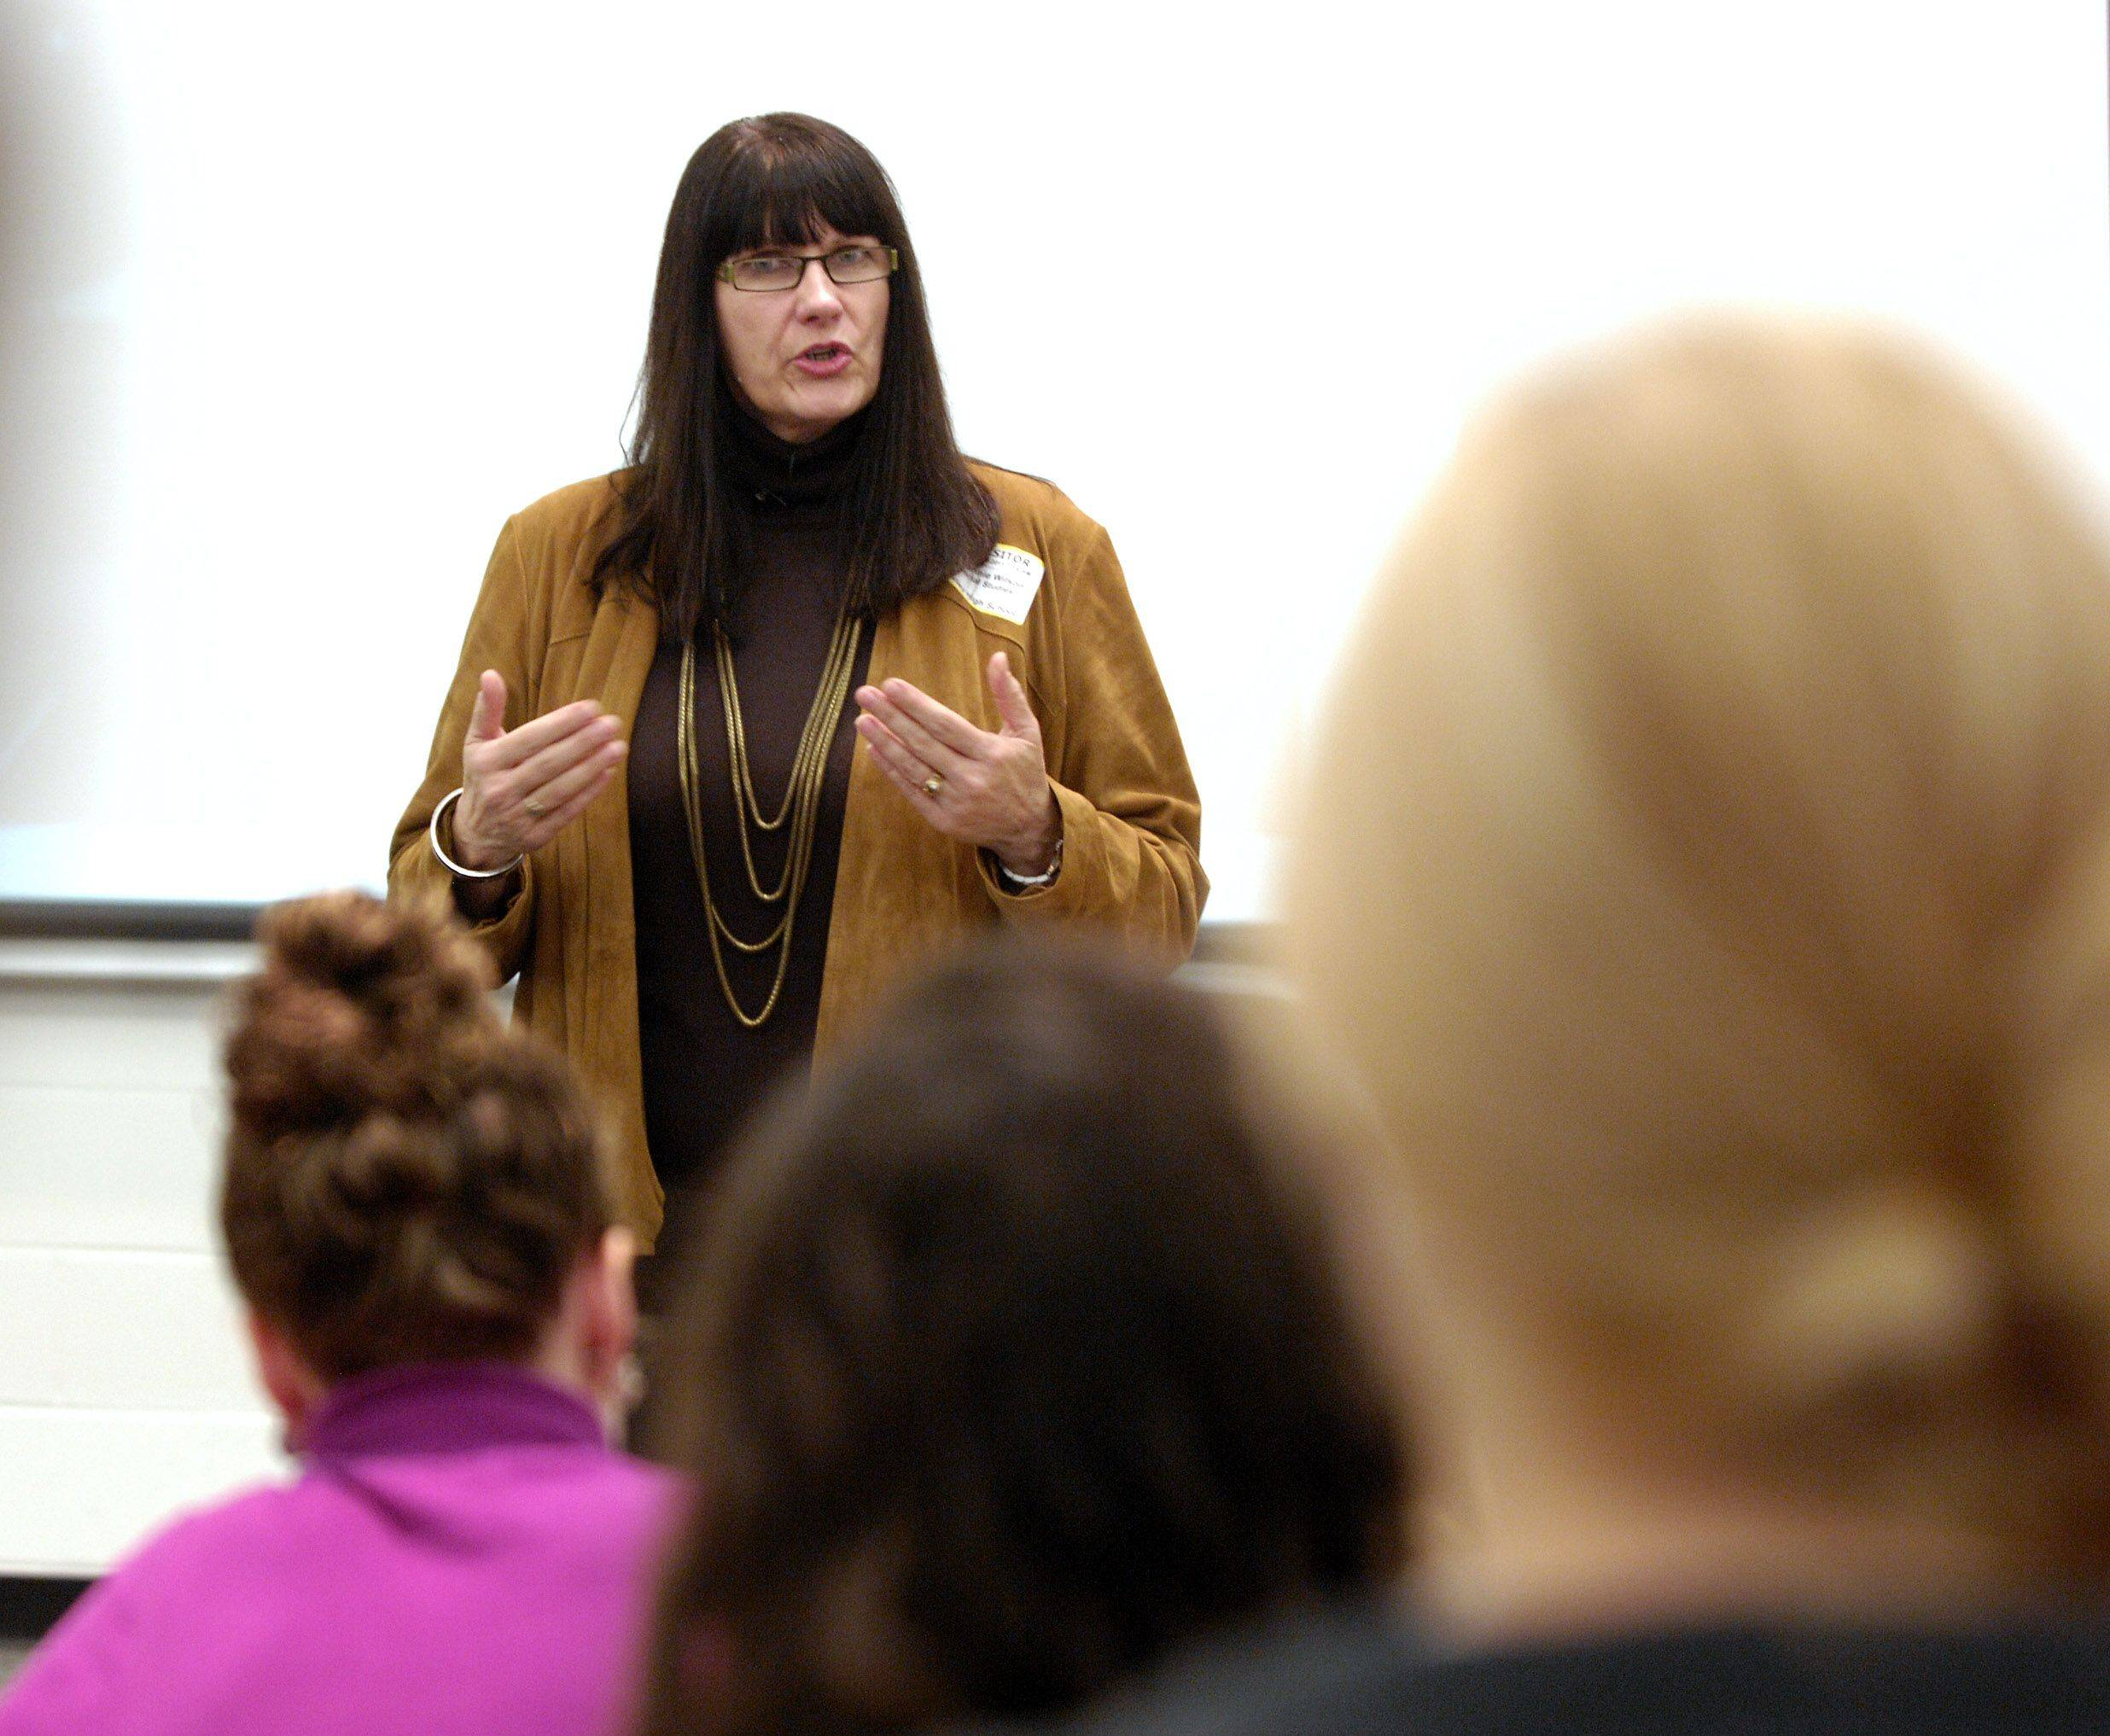 Connie Wilson, the Naperville forewoman of the jury that found Rod Blagojevich guilty of federal corruption charges, speaks Tuesday to students at Metea Valley High School in Aurora.